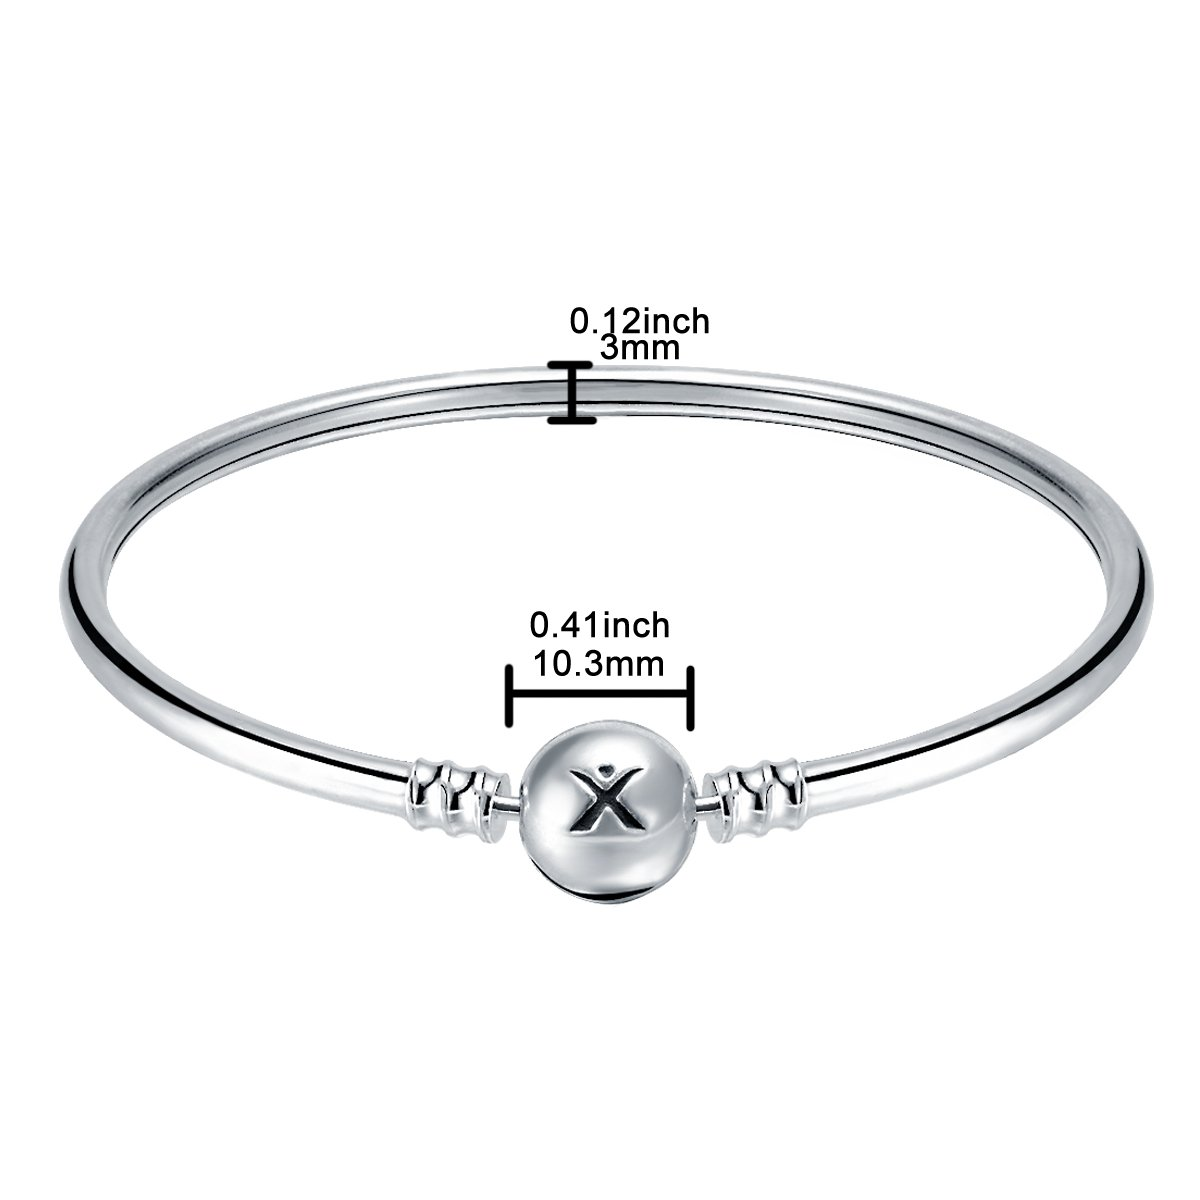 Changeable 925 Sterling Silver Women Charms Bracelet (Smooth Bangle) 19CM by Changeable (Image #2)